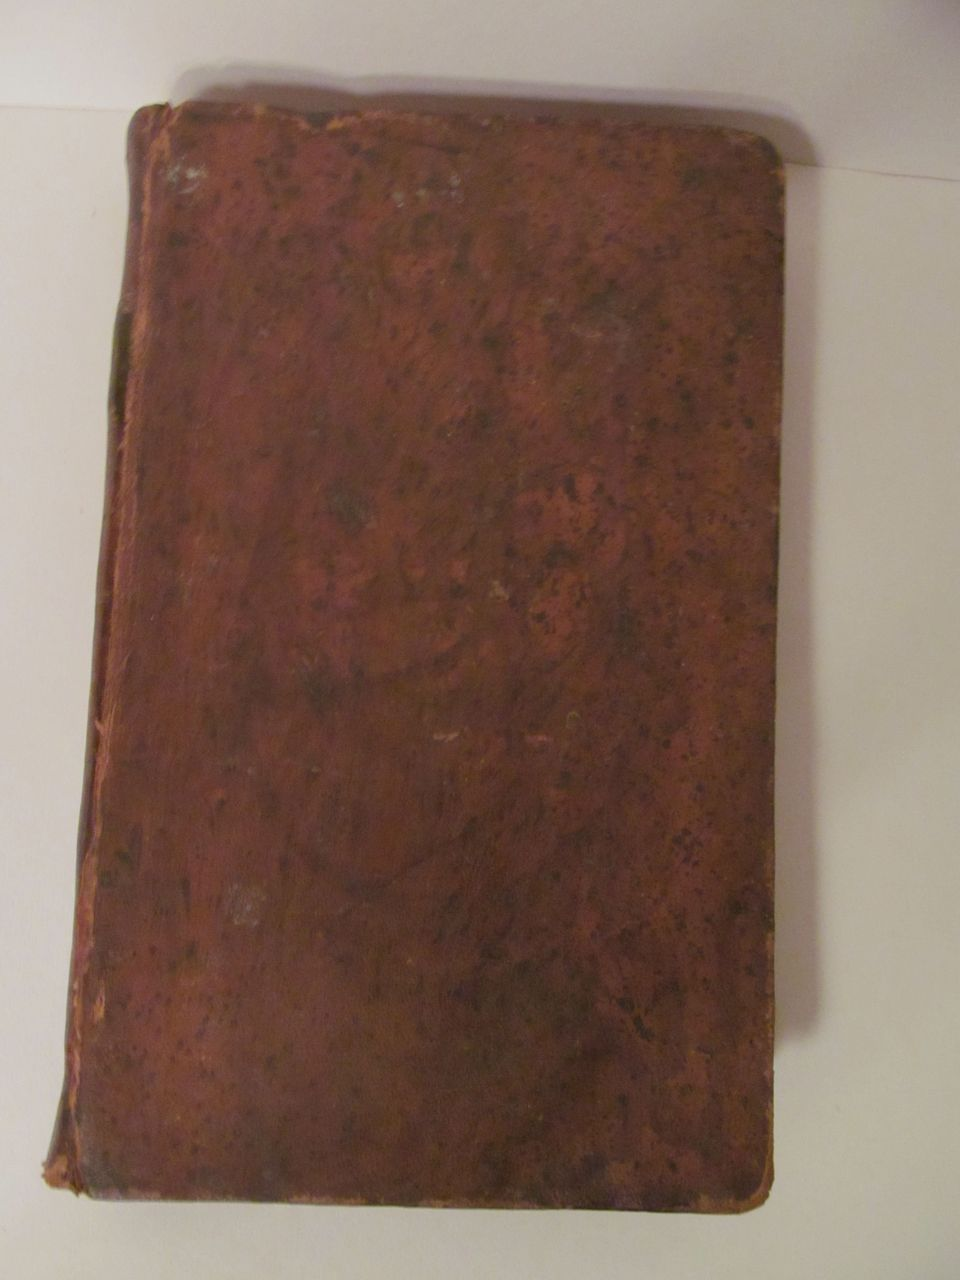 1815 Calvary or the Death of Christ, Poem in Eight Books by Richard Cumberland